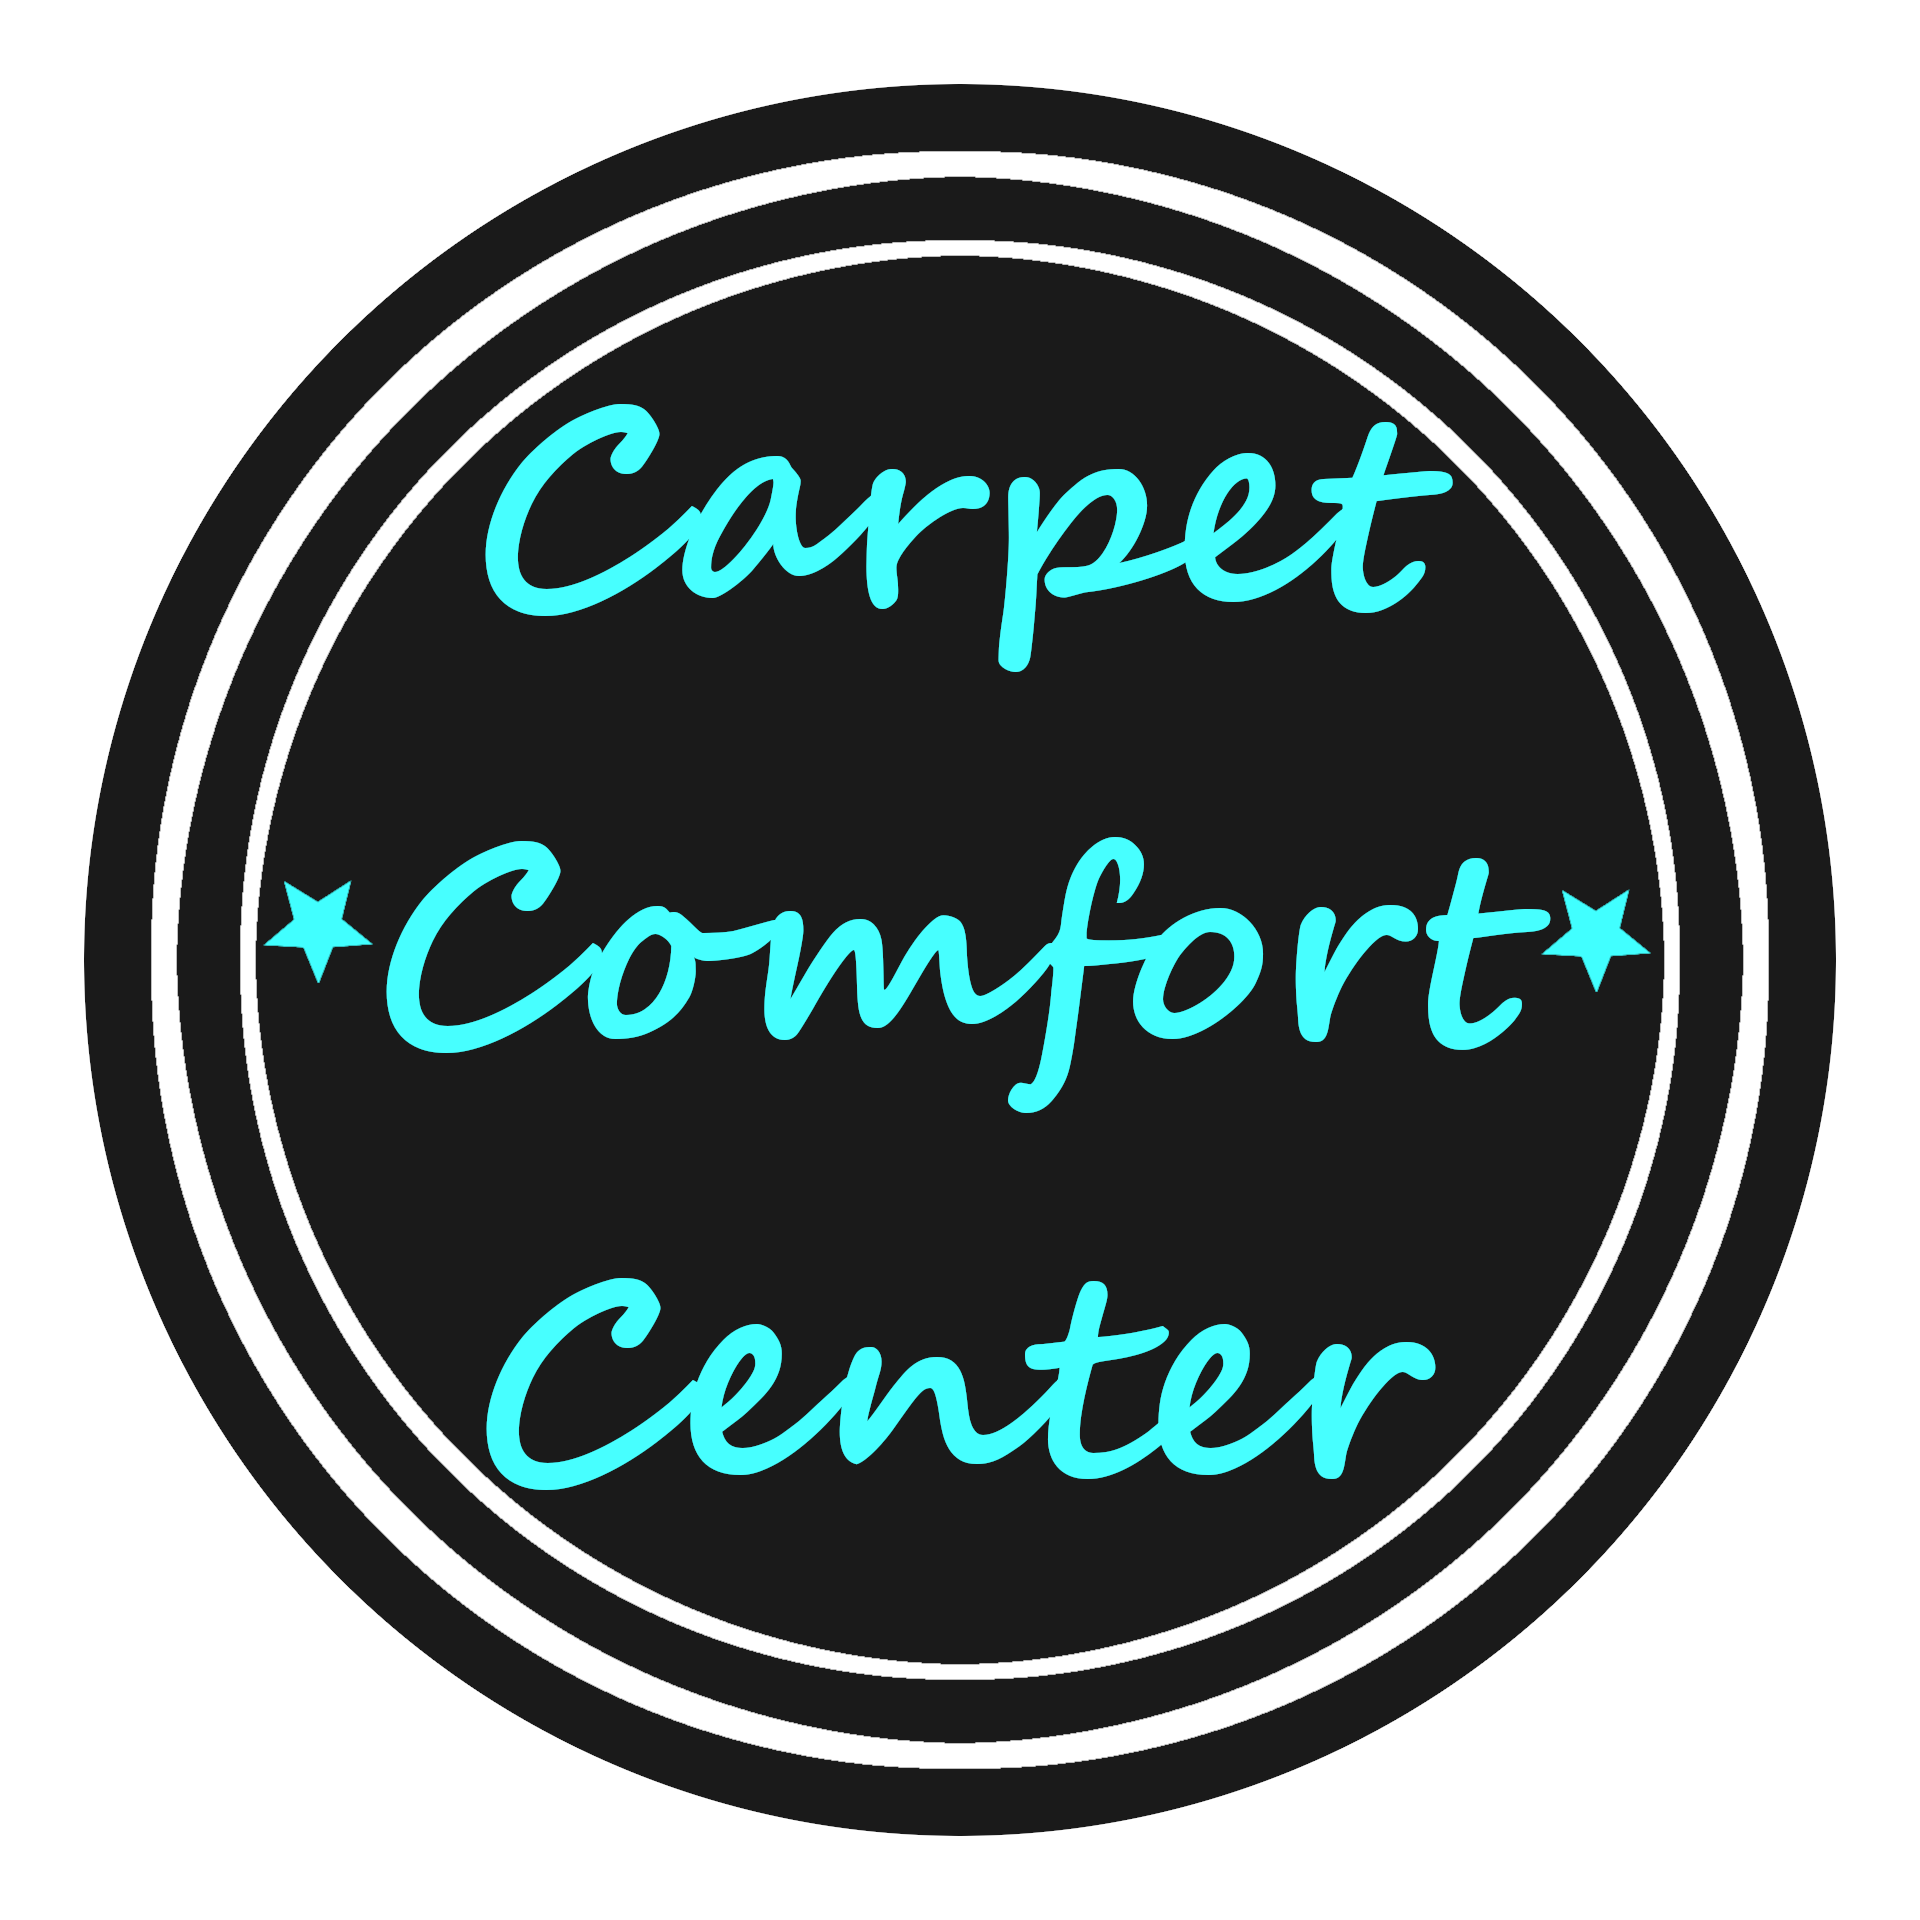 Carpet Comfort Center